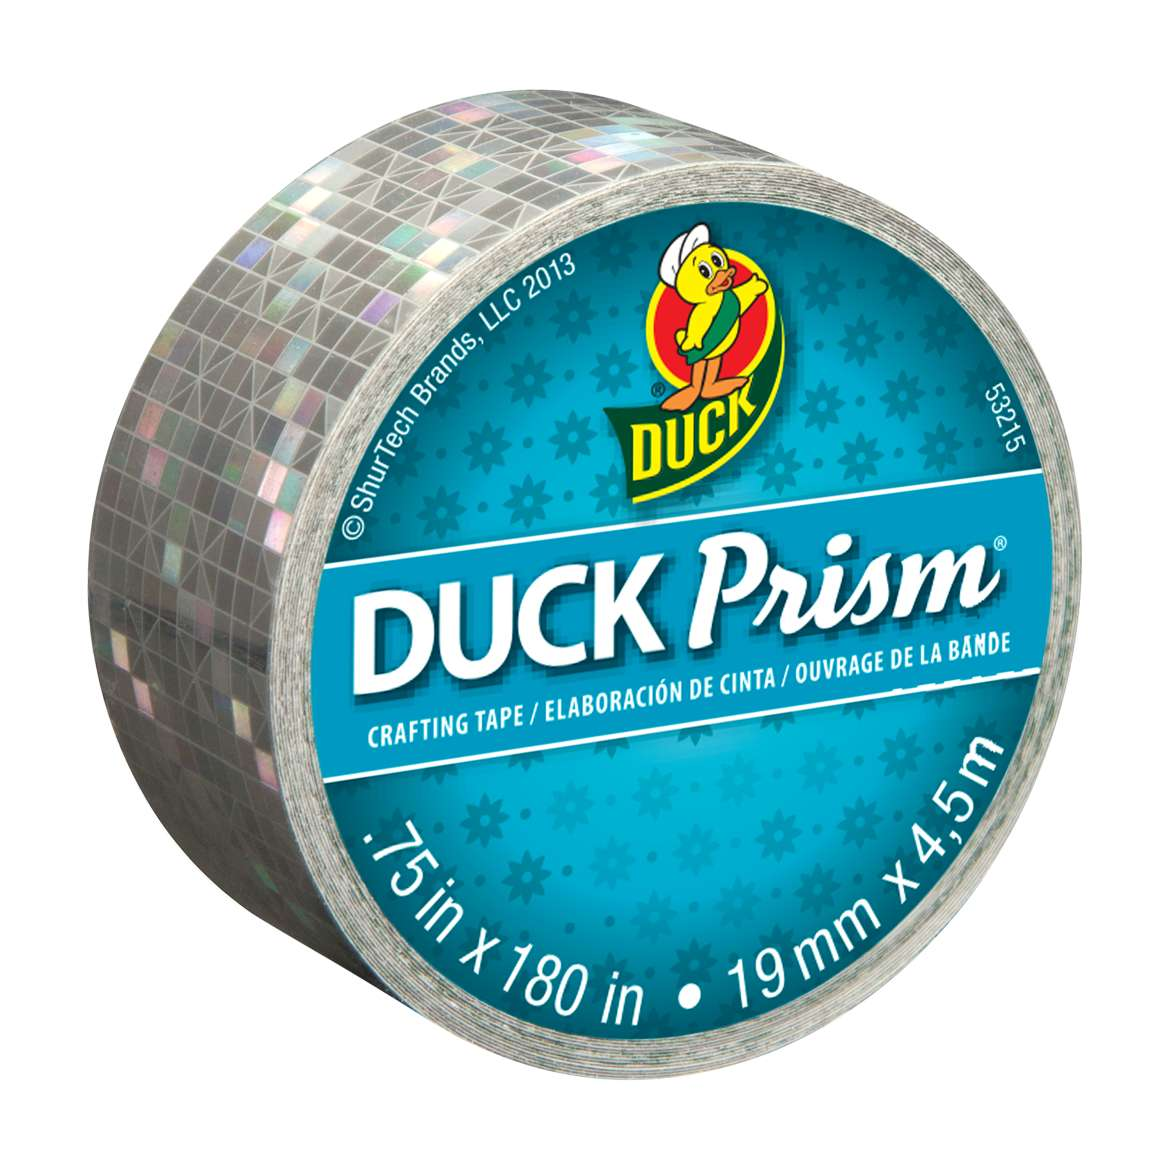 Ducklings® Prism® Crafting Tape - Square, .75 in. x 180 in. Image